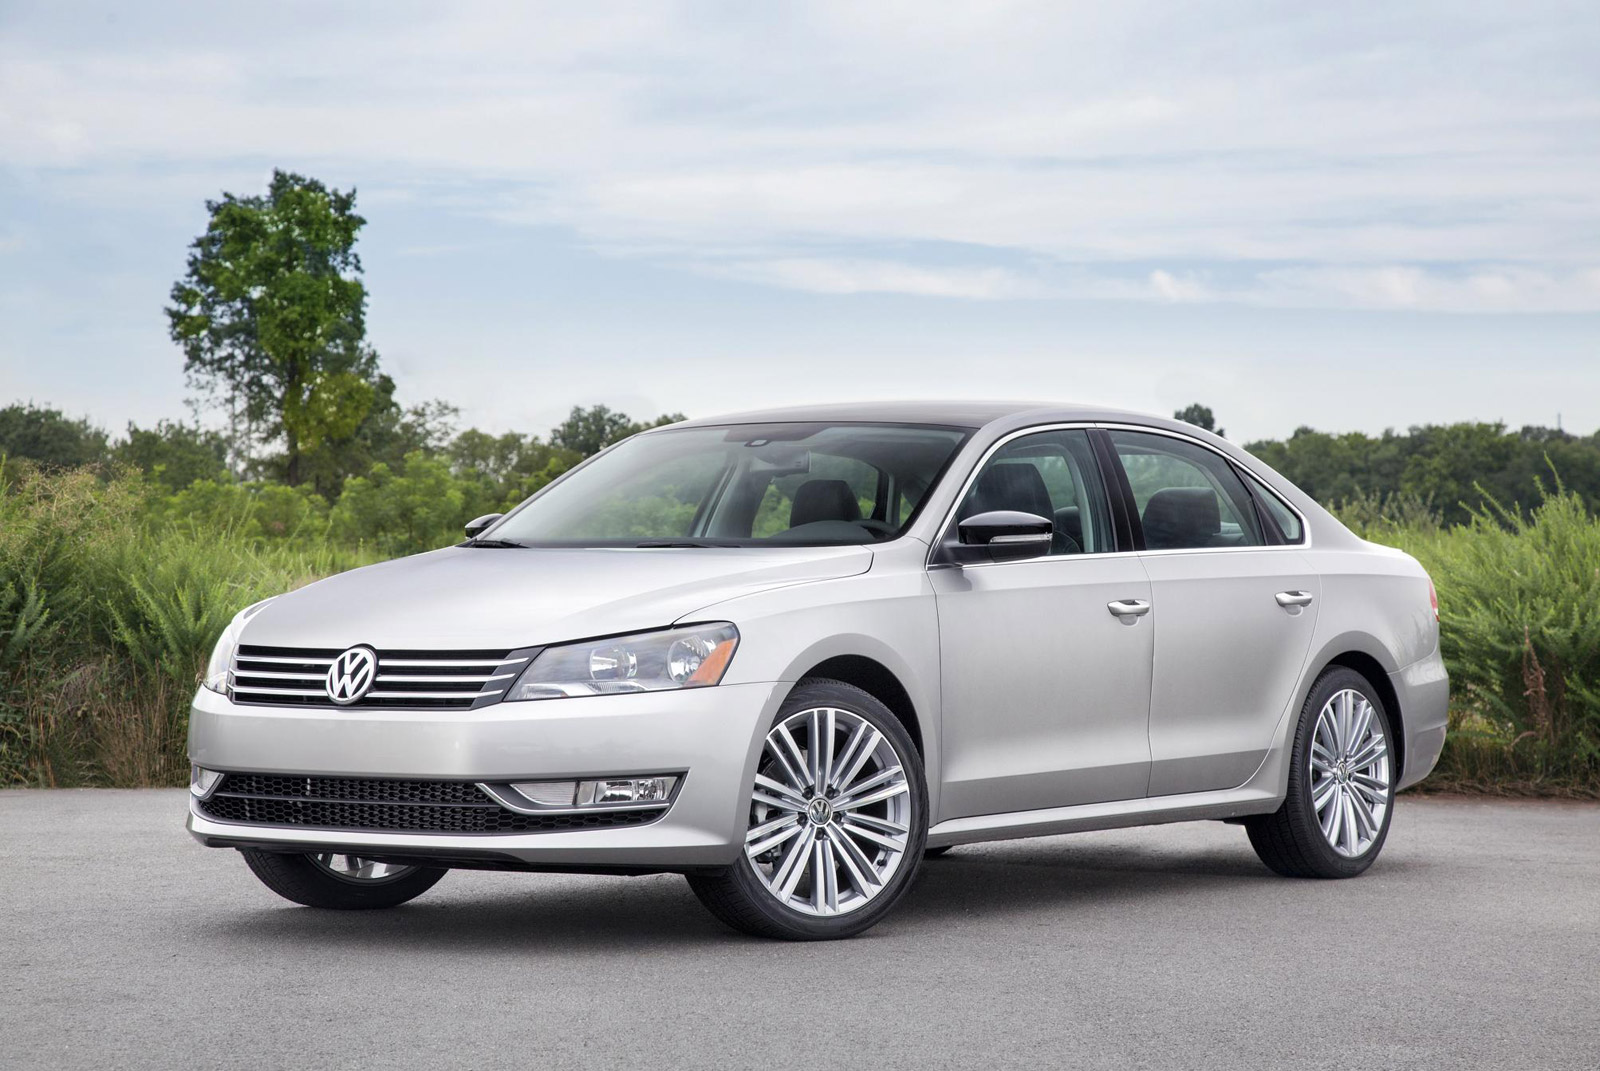 Bmw Of Fresno >> 2014 Volkswagen Passat (VW) Review, Ratings, Specs, Prices, and Photos - The Car Connection